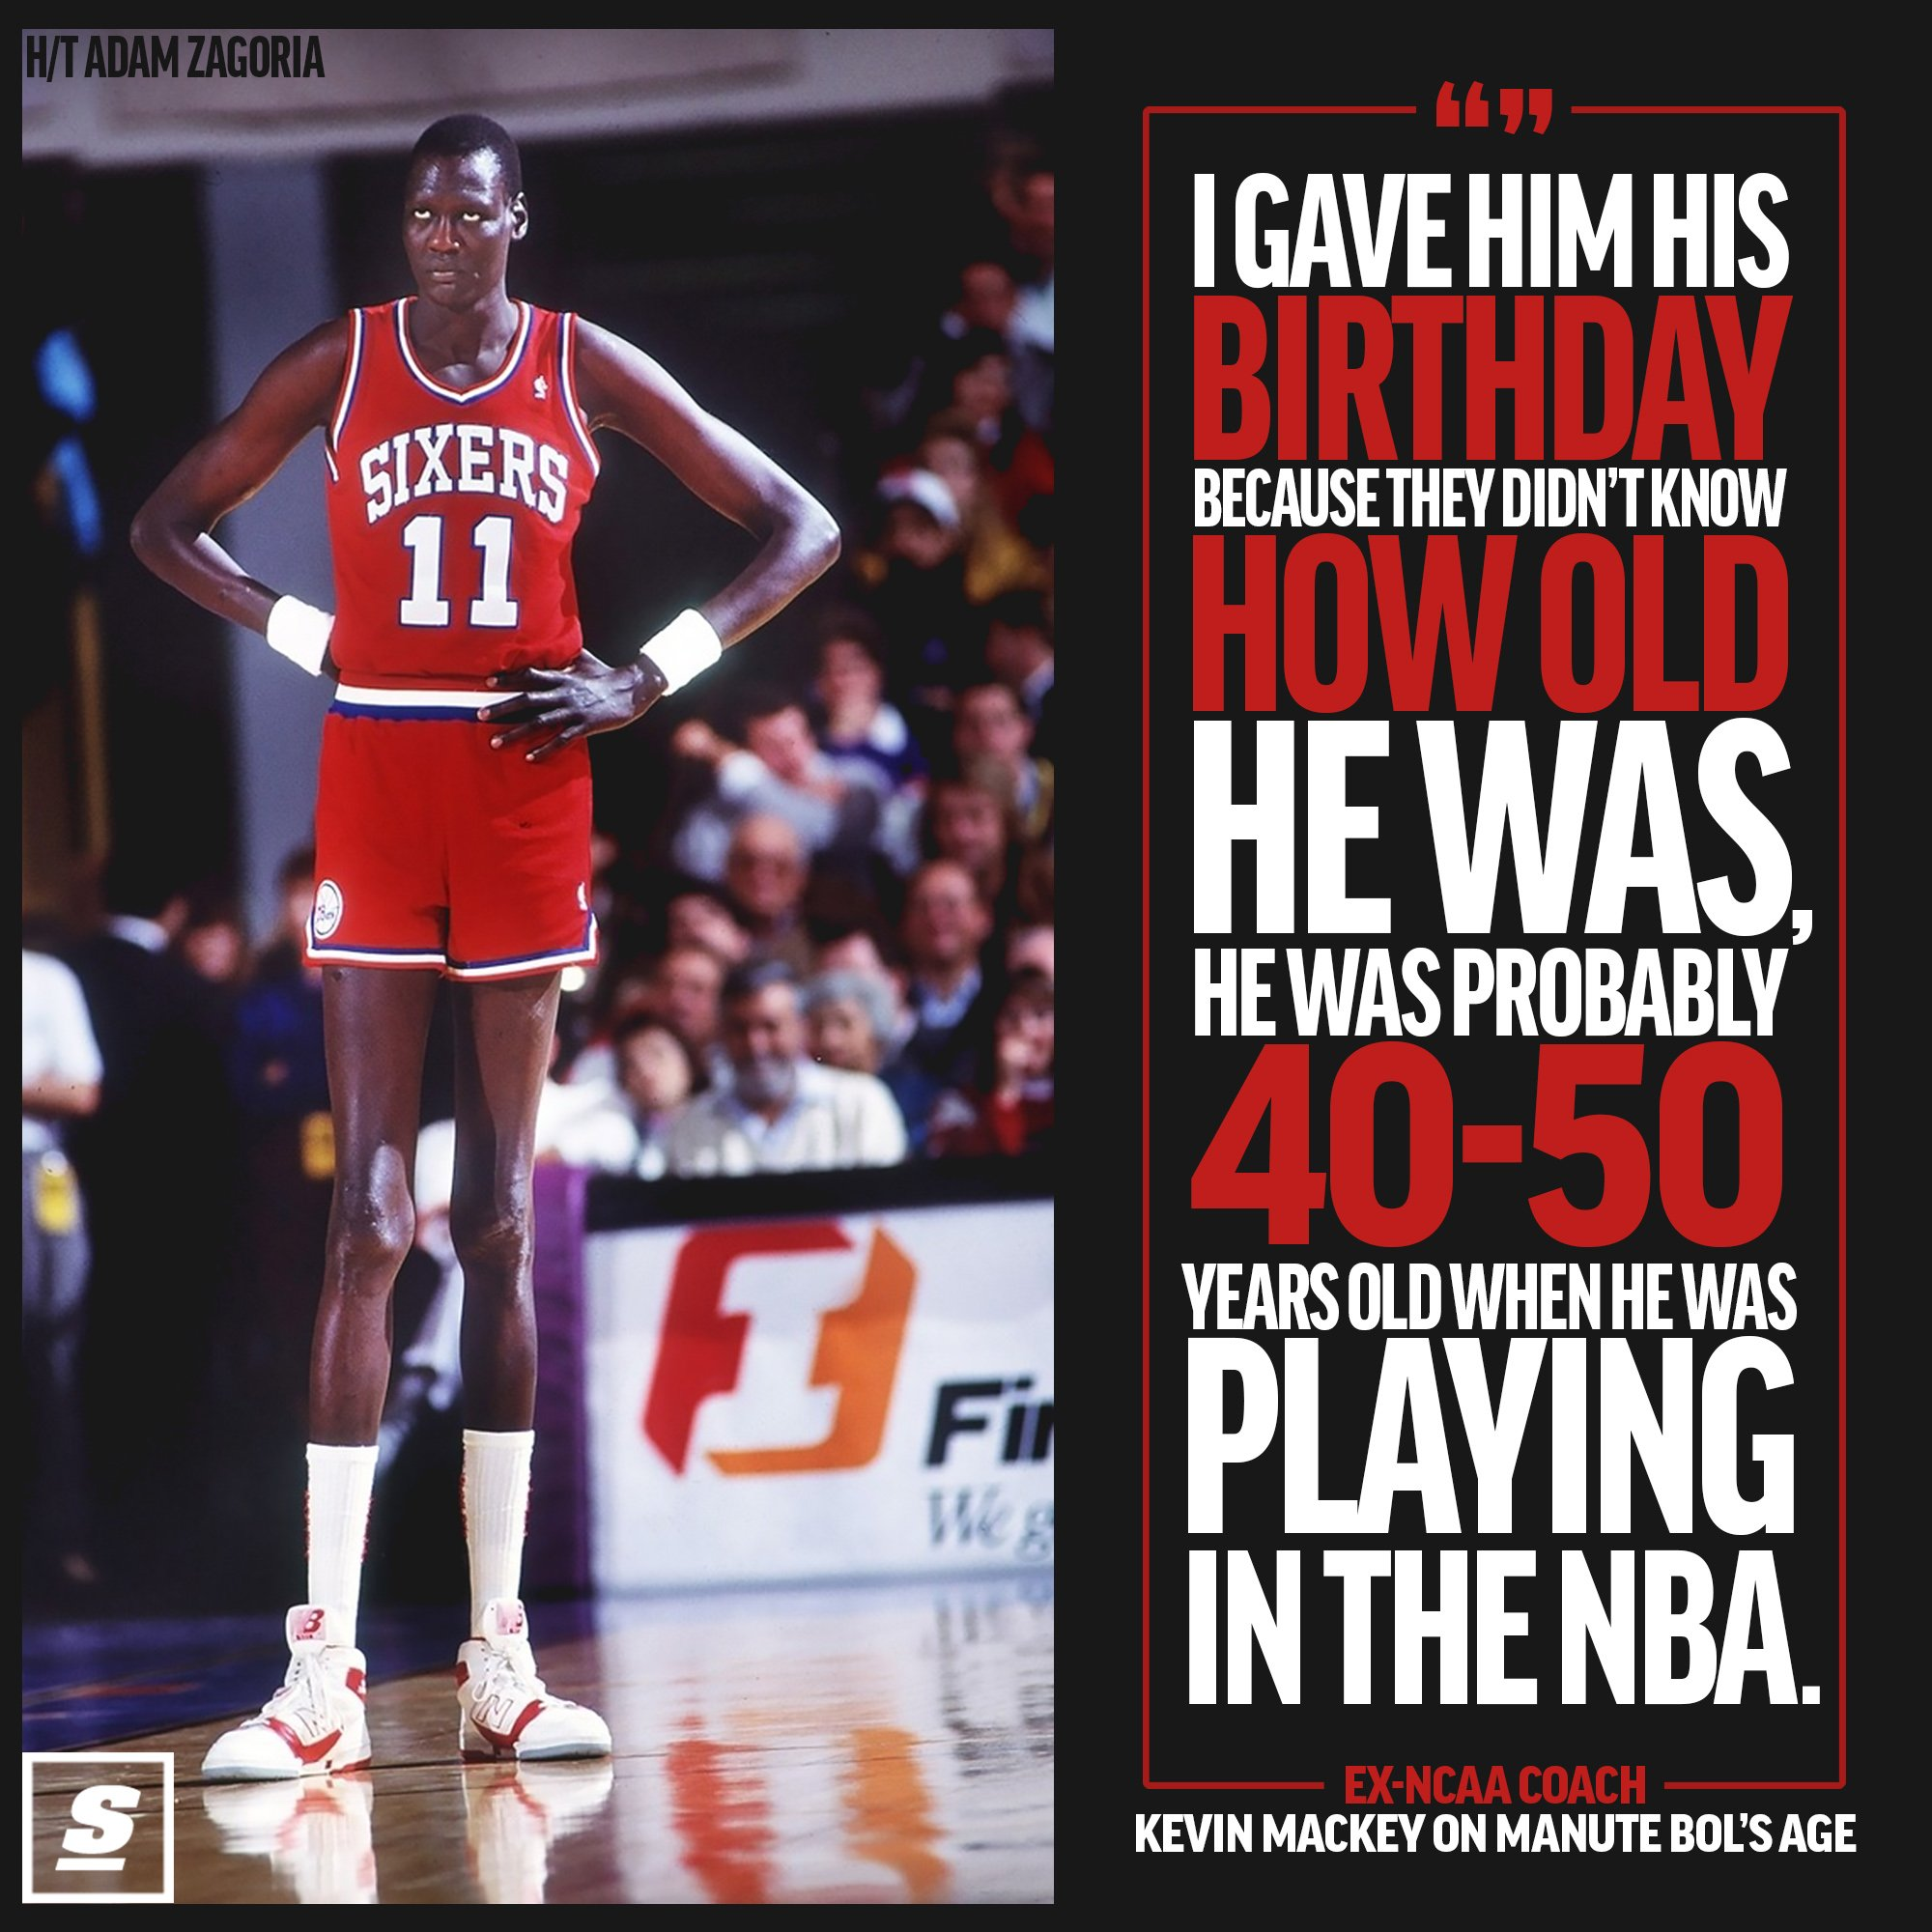 Manute Bol may have been a little older than 23 when he began his NBA career. https://t.co/Tv2vQby6gZ https://t.co/n3bZKjKdCC